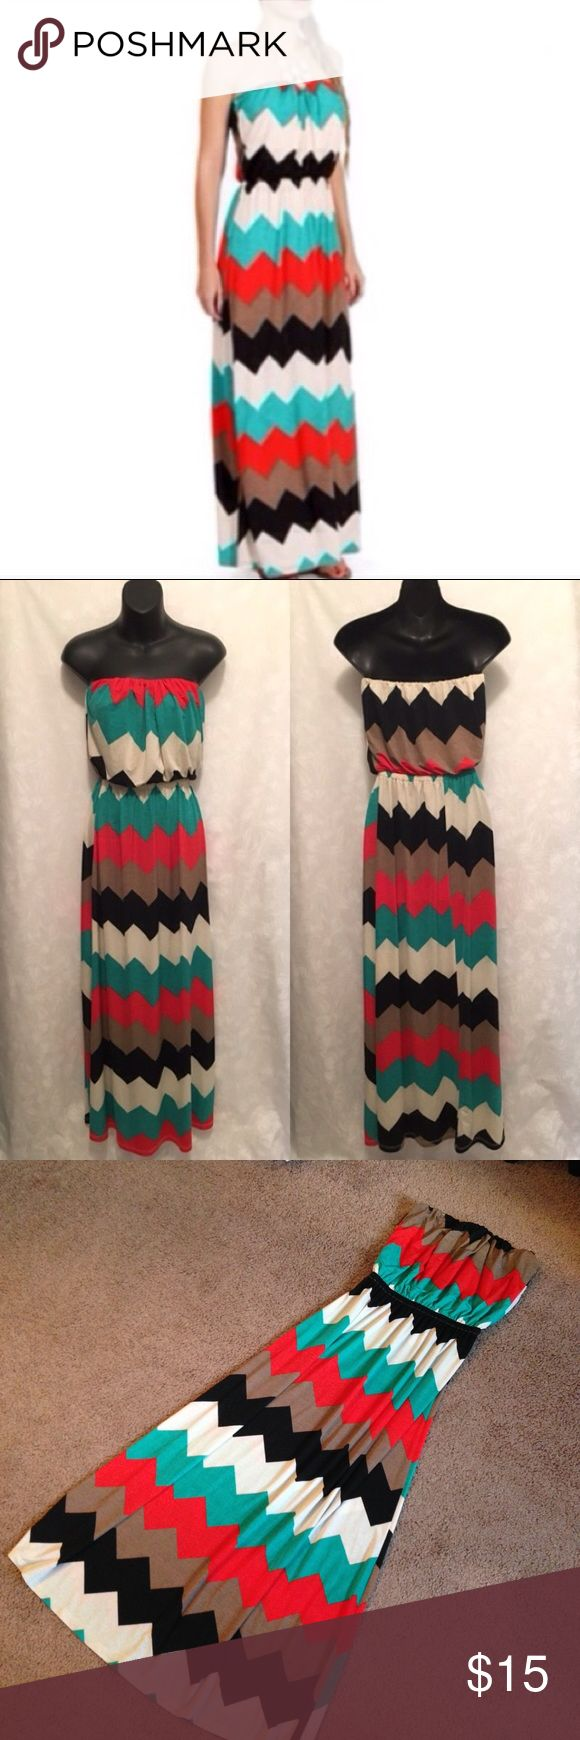 """EUC Chevron Maxi Dress Strapless Maxi dress with elastic neckline and waist in gorgeous orange and turquoise print. Perfect for a night out! Size is M/L, would fit size 6-10. Length is approx 45"""" Mezzanine Dresses Maxi"""